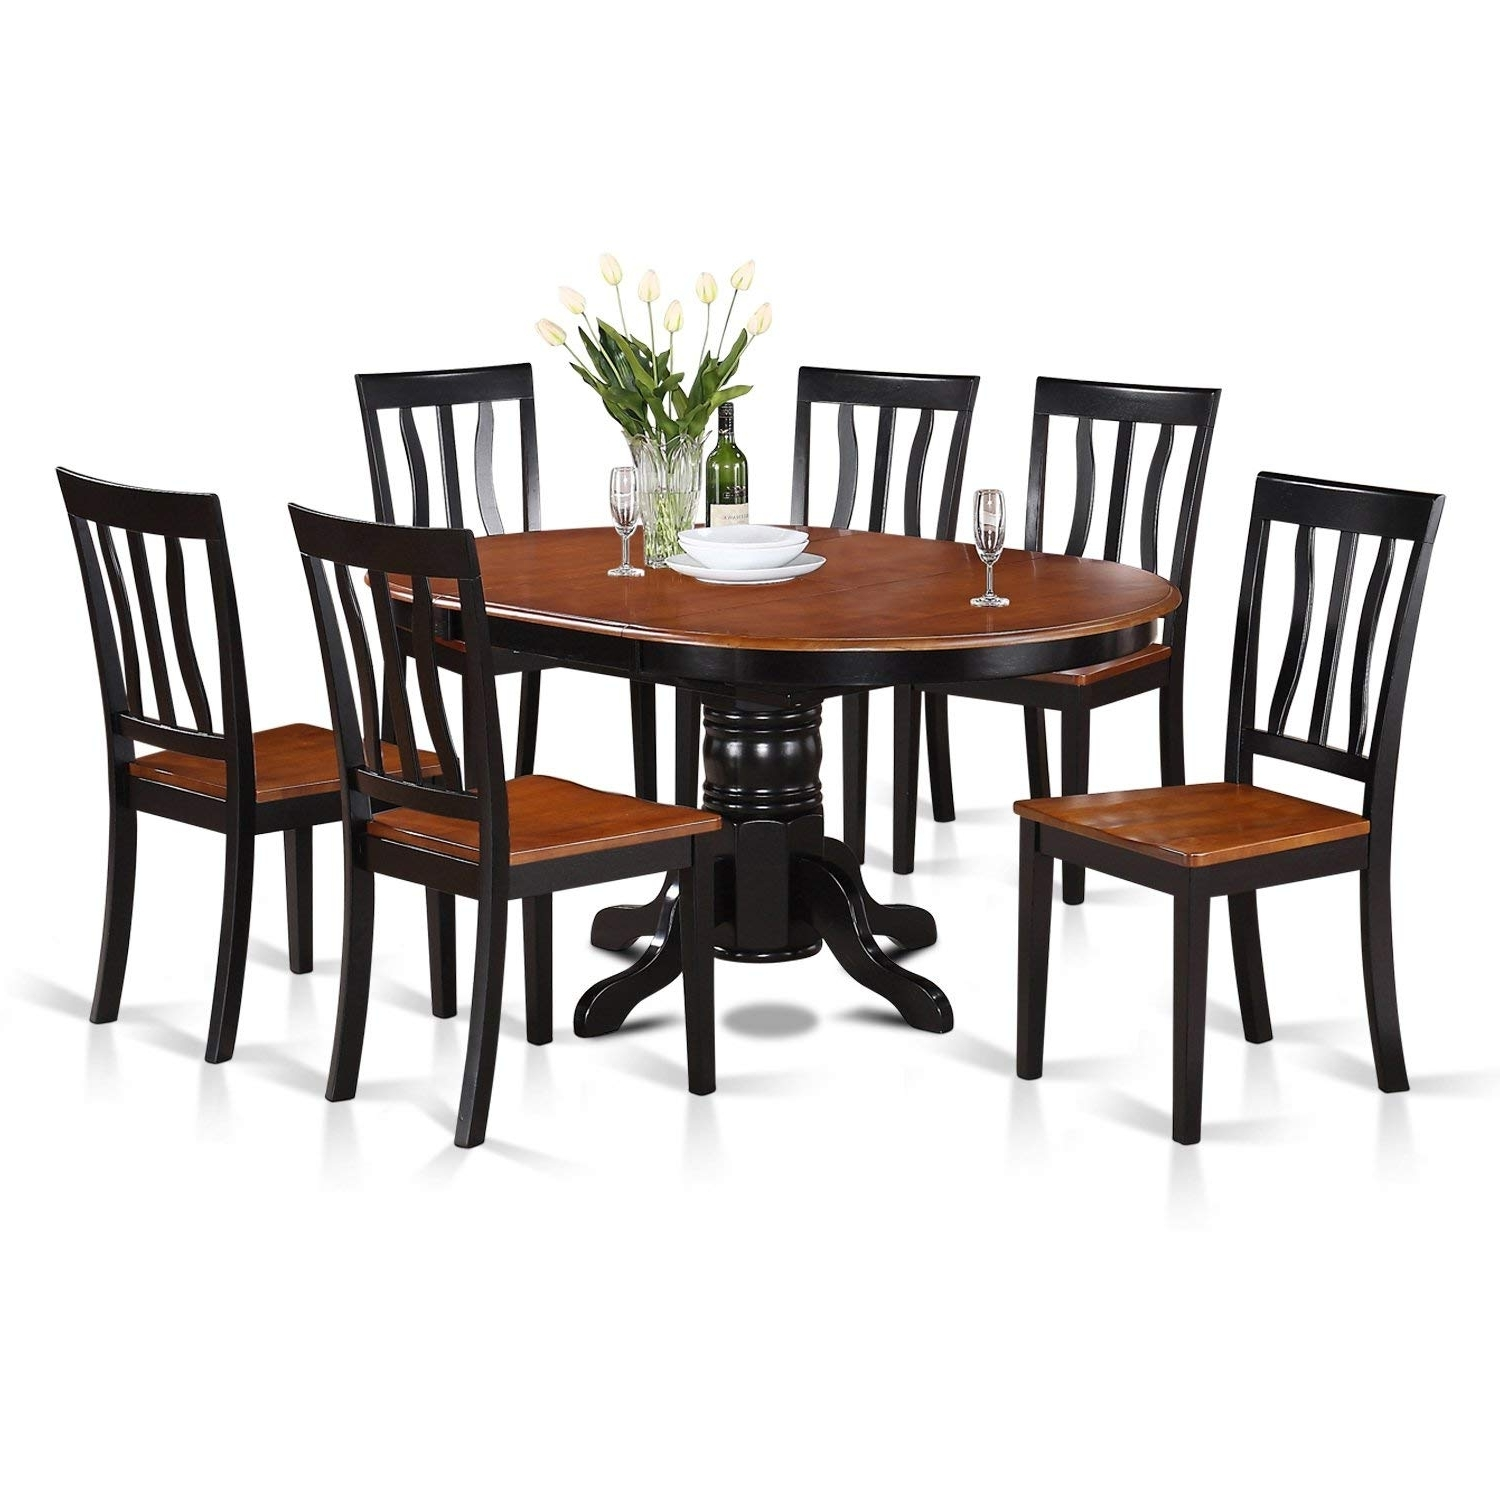 Jaxon 7 Piece Rectangle Dining Sets With Wood Chairs with regard to Well-liked Amazon: East West Furniture Avat7-Blk-W 7-Piece Dining Table Set